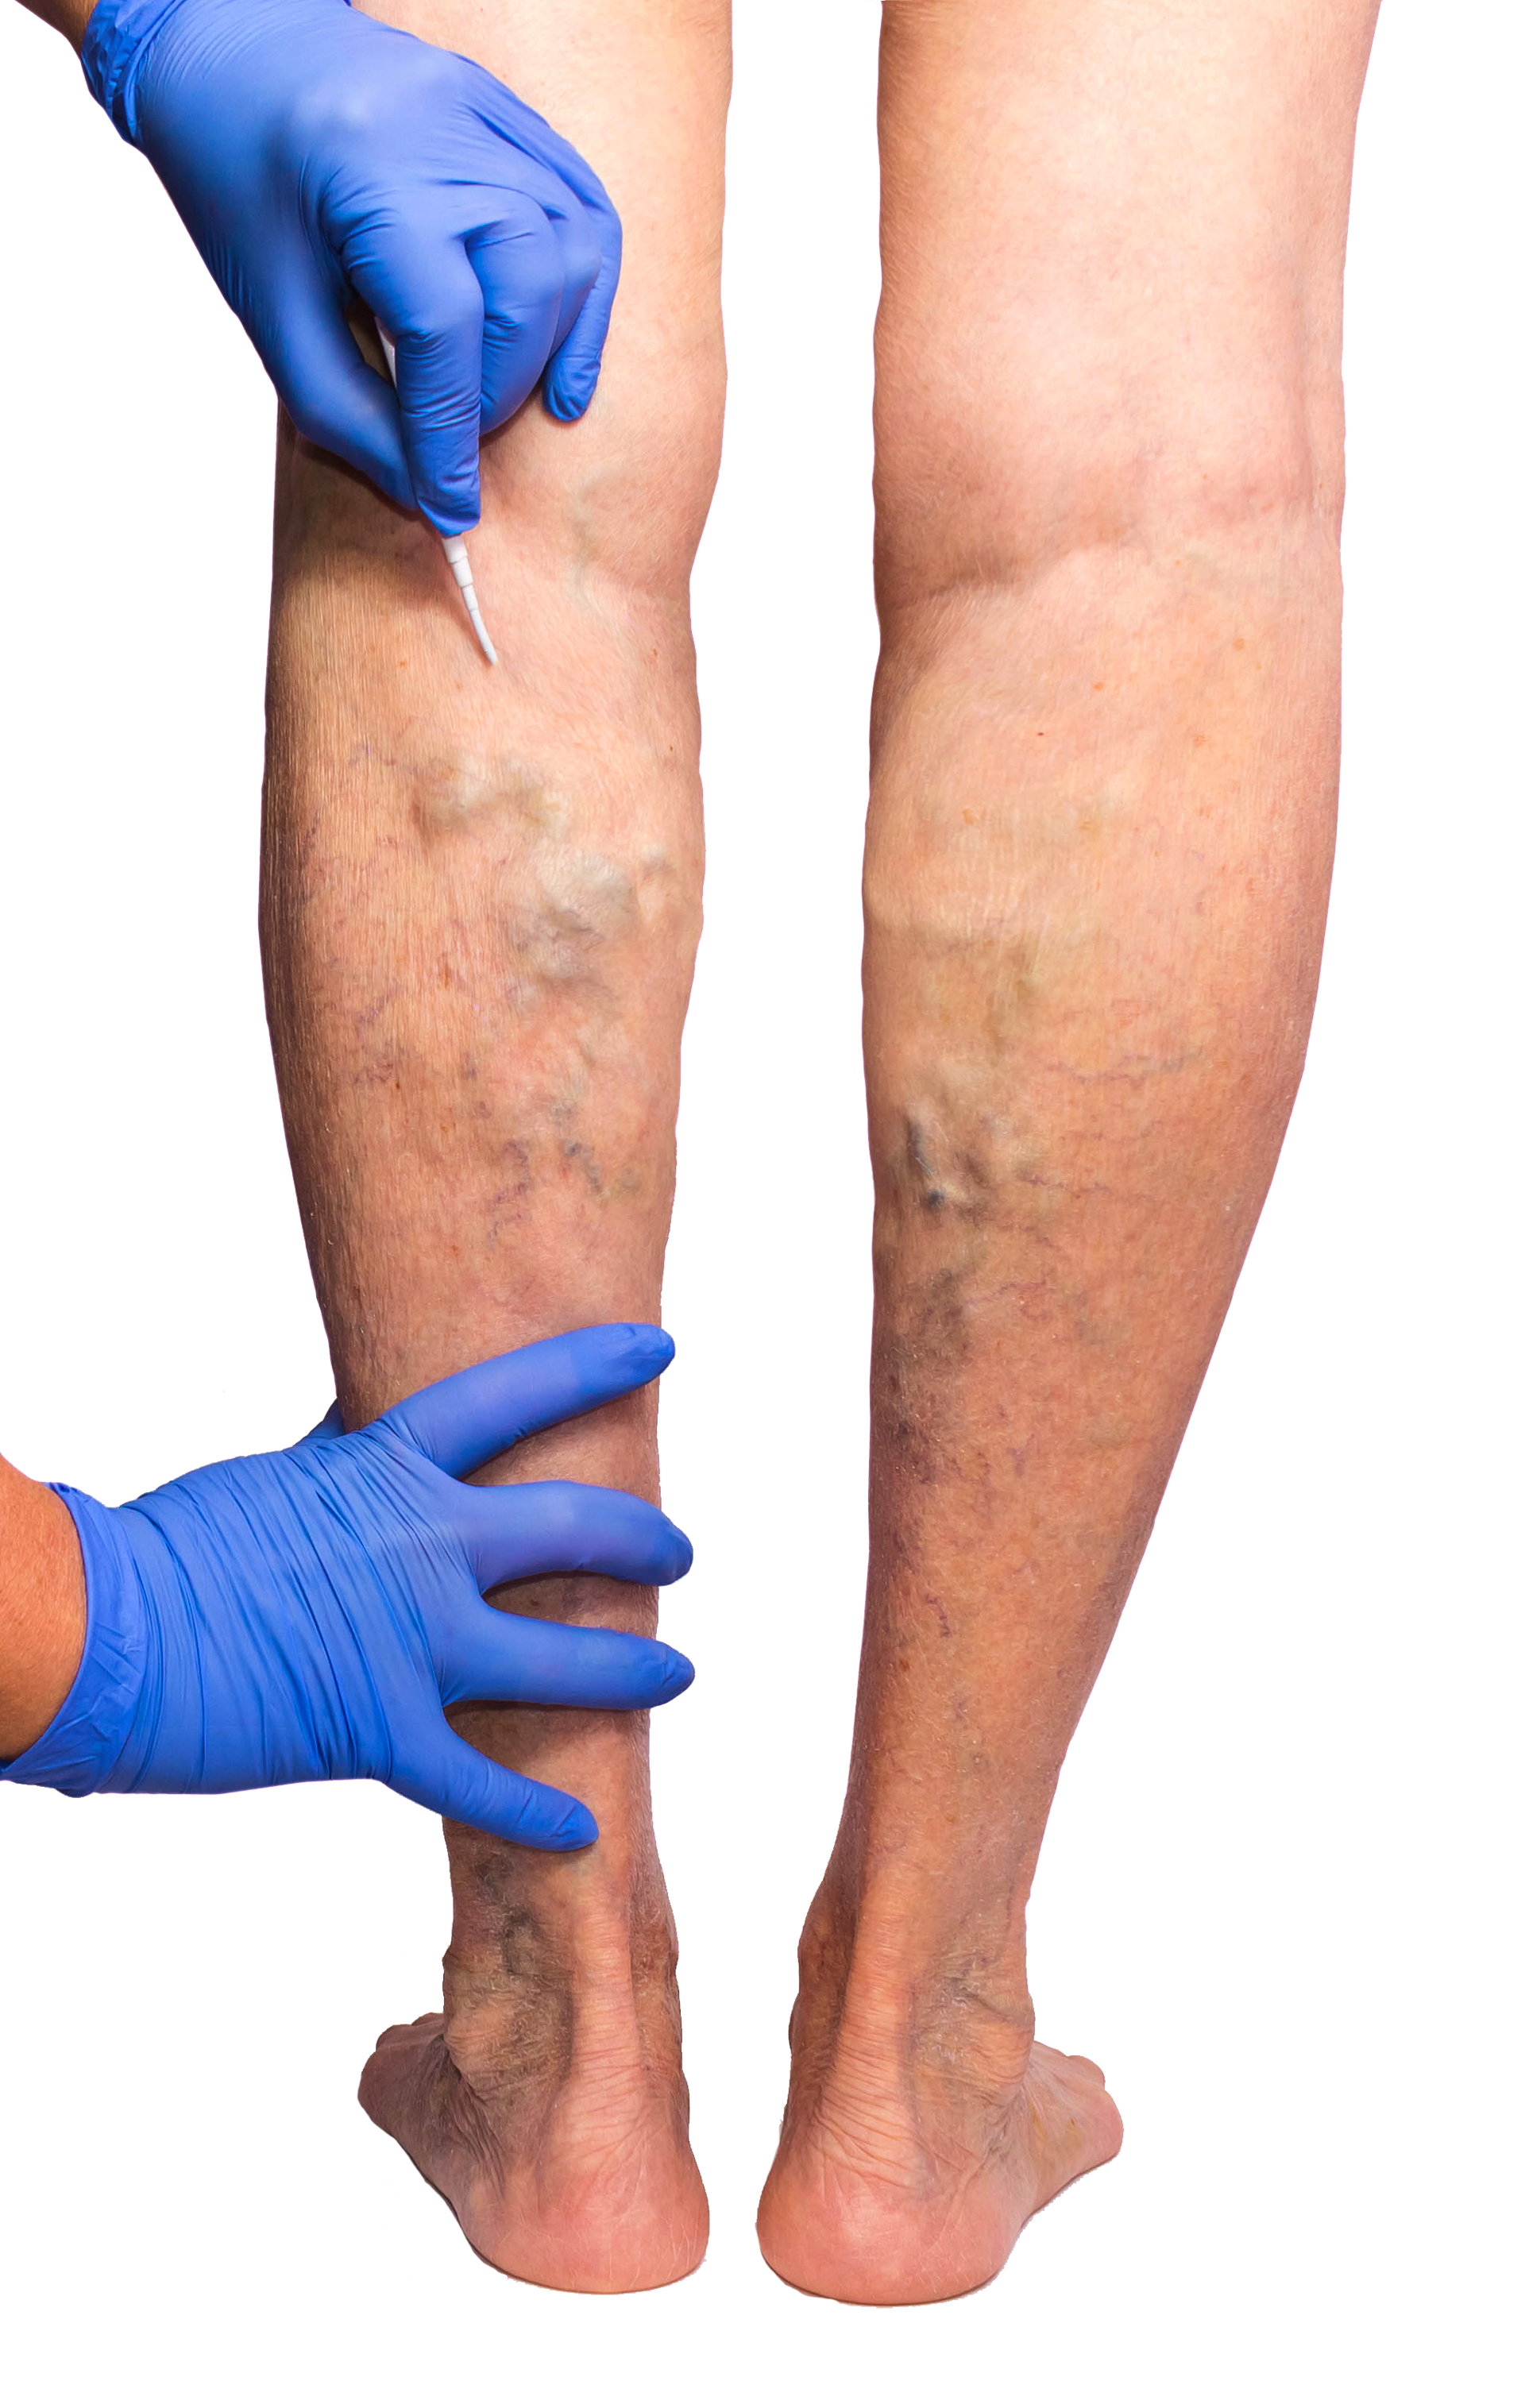 Are you looking for a vein doctor in Paramus? In this article, we introduce you to Dr. Todd Kobrinski, the best double board-certified vein doctor in Paramus, NJ.